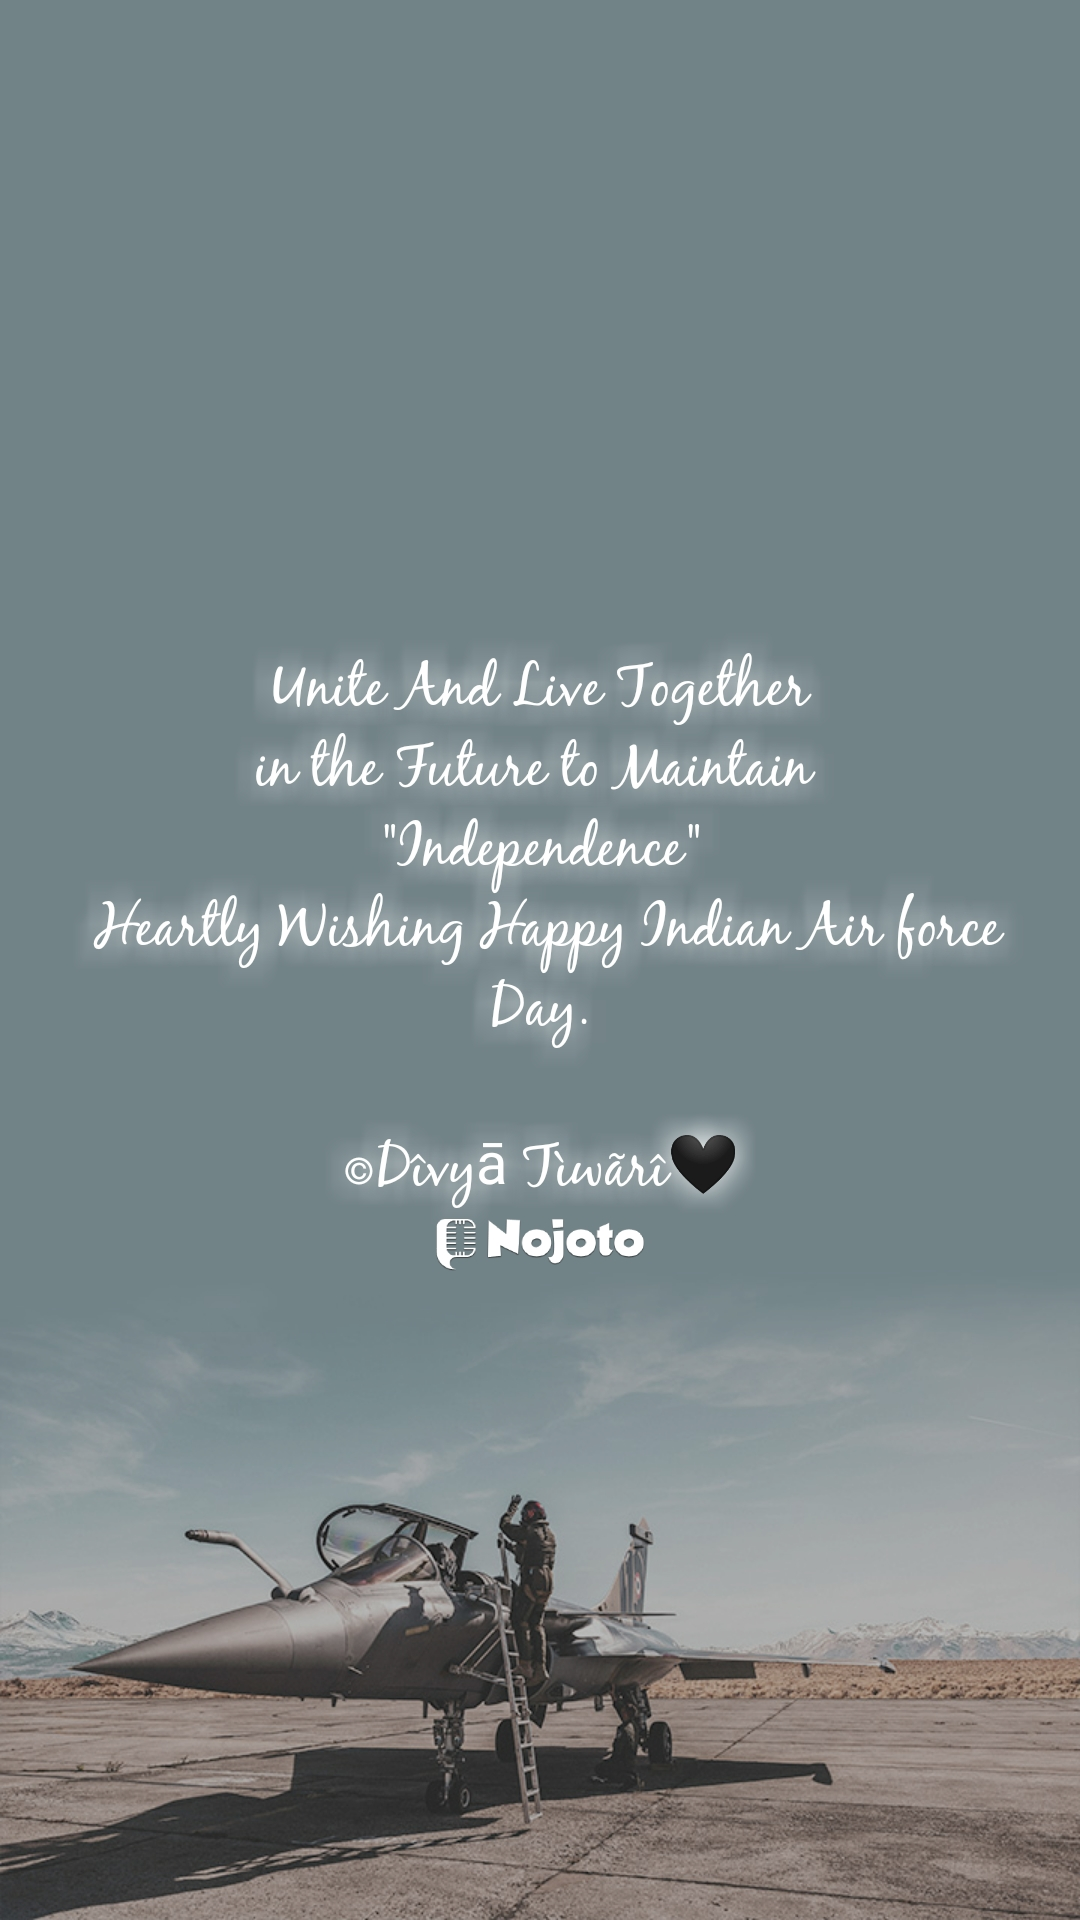 """Unite And Live Together in the Future to Maintain  """"Independence""""  Heartly Wishing Happy Indian Air force Day.  ©Dîvyā Tìwãrî🖤"""